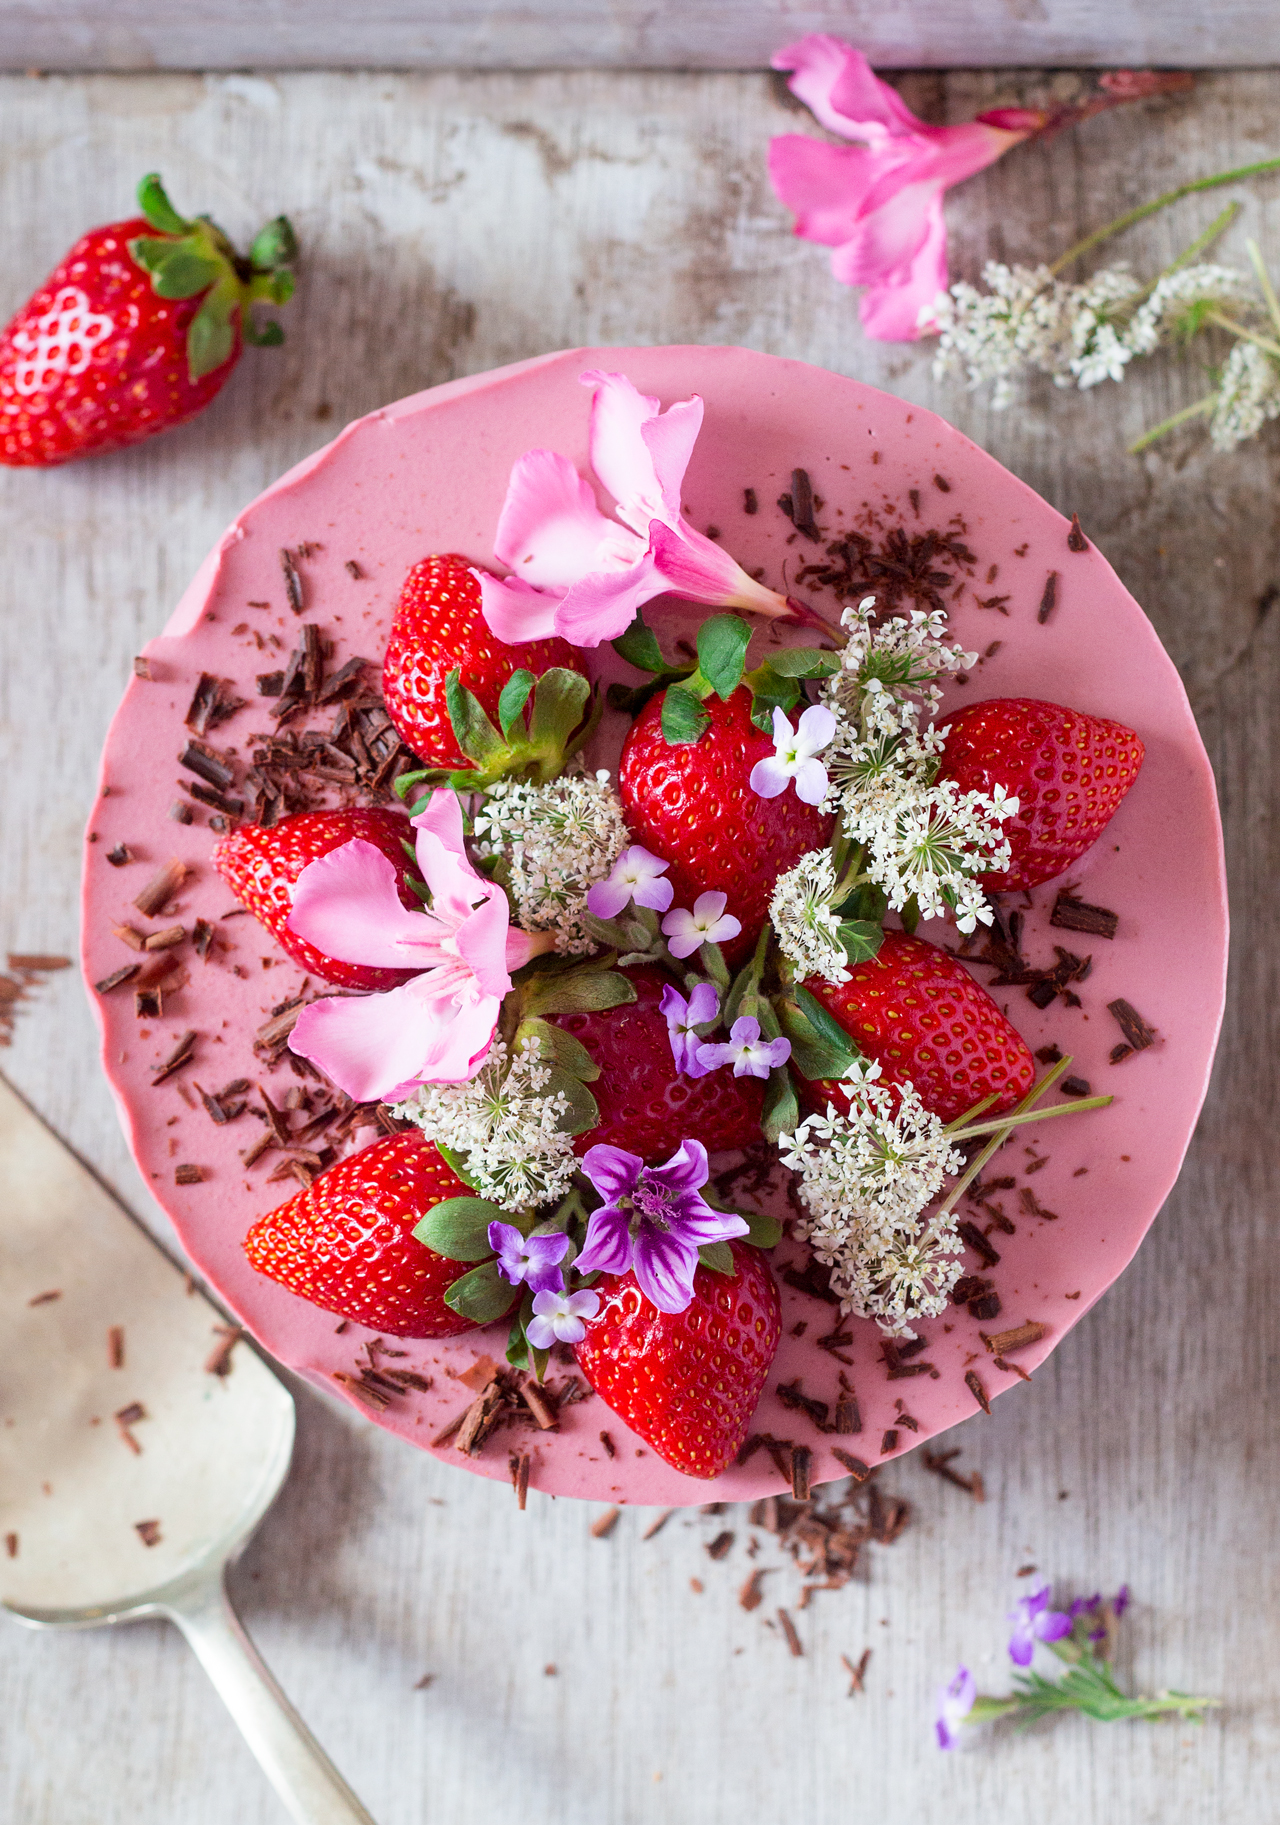 strawberry chocolate essays Strawberry and chocolate film alt text strawberry and chocolate film date added july 12, 2017 dimensions 1700 x 2200 size 130 kb.